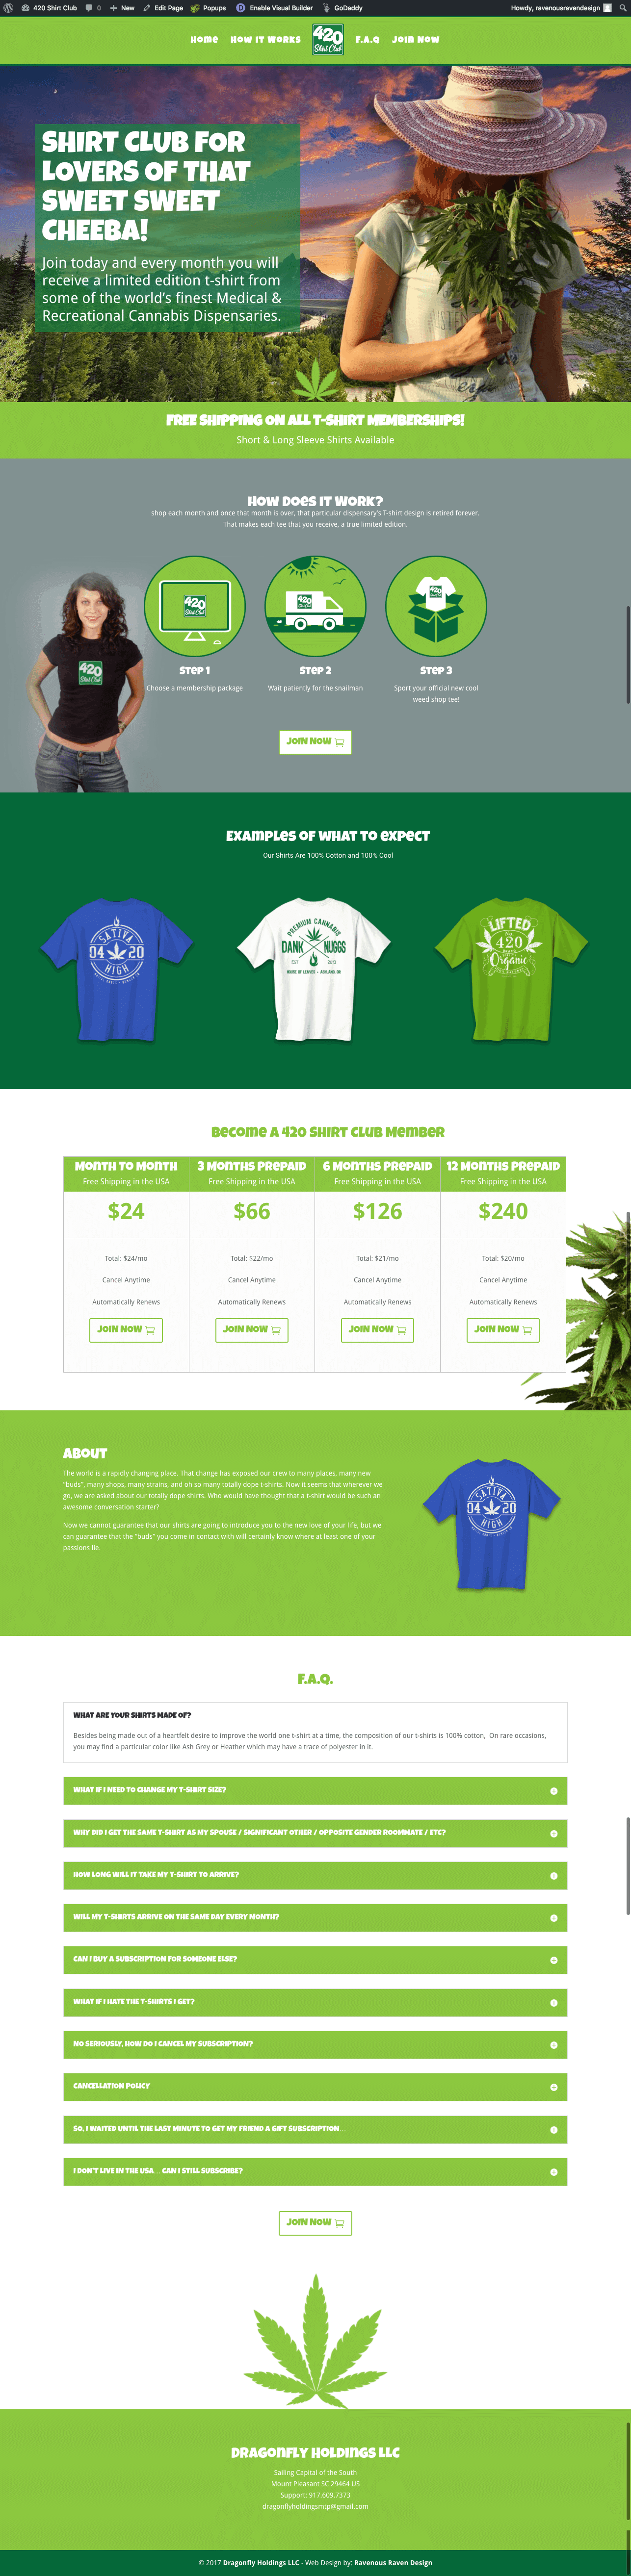 One Page Website or Sales Funnel Page 2